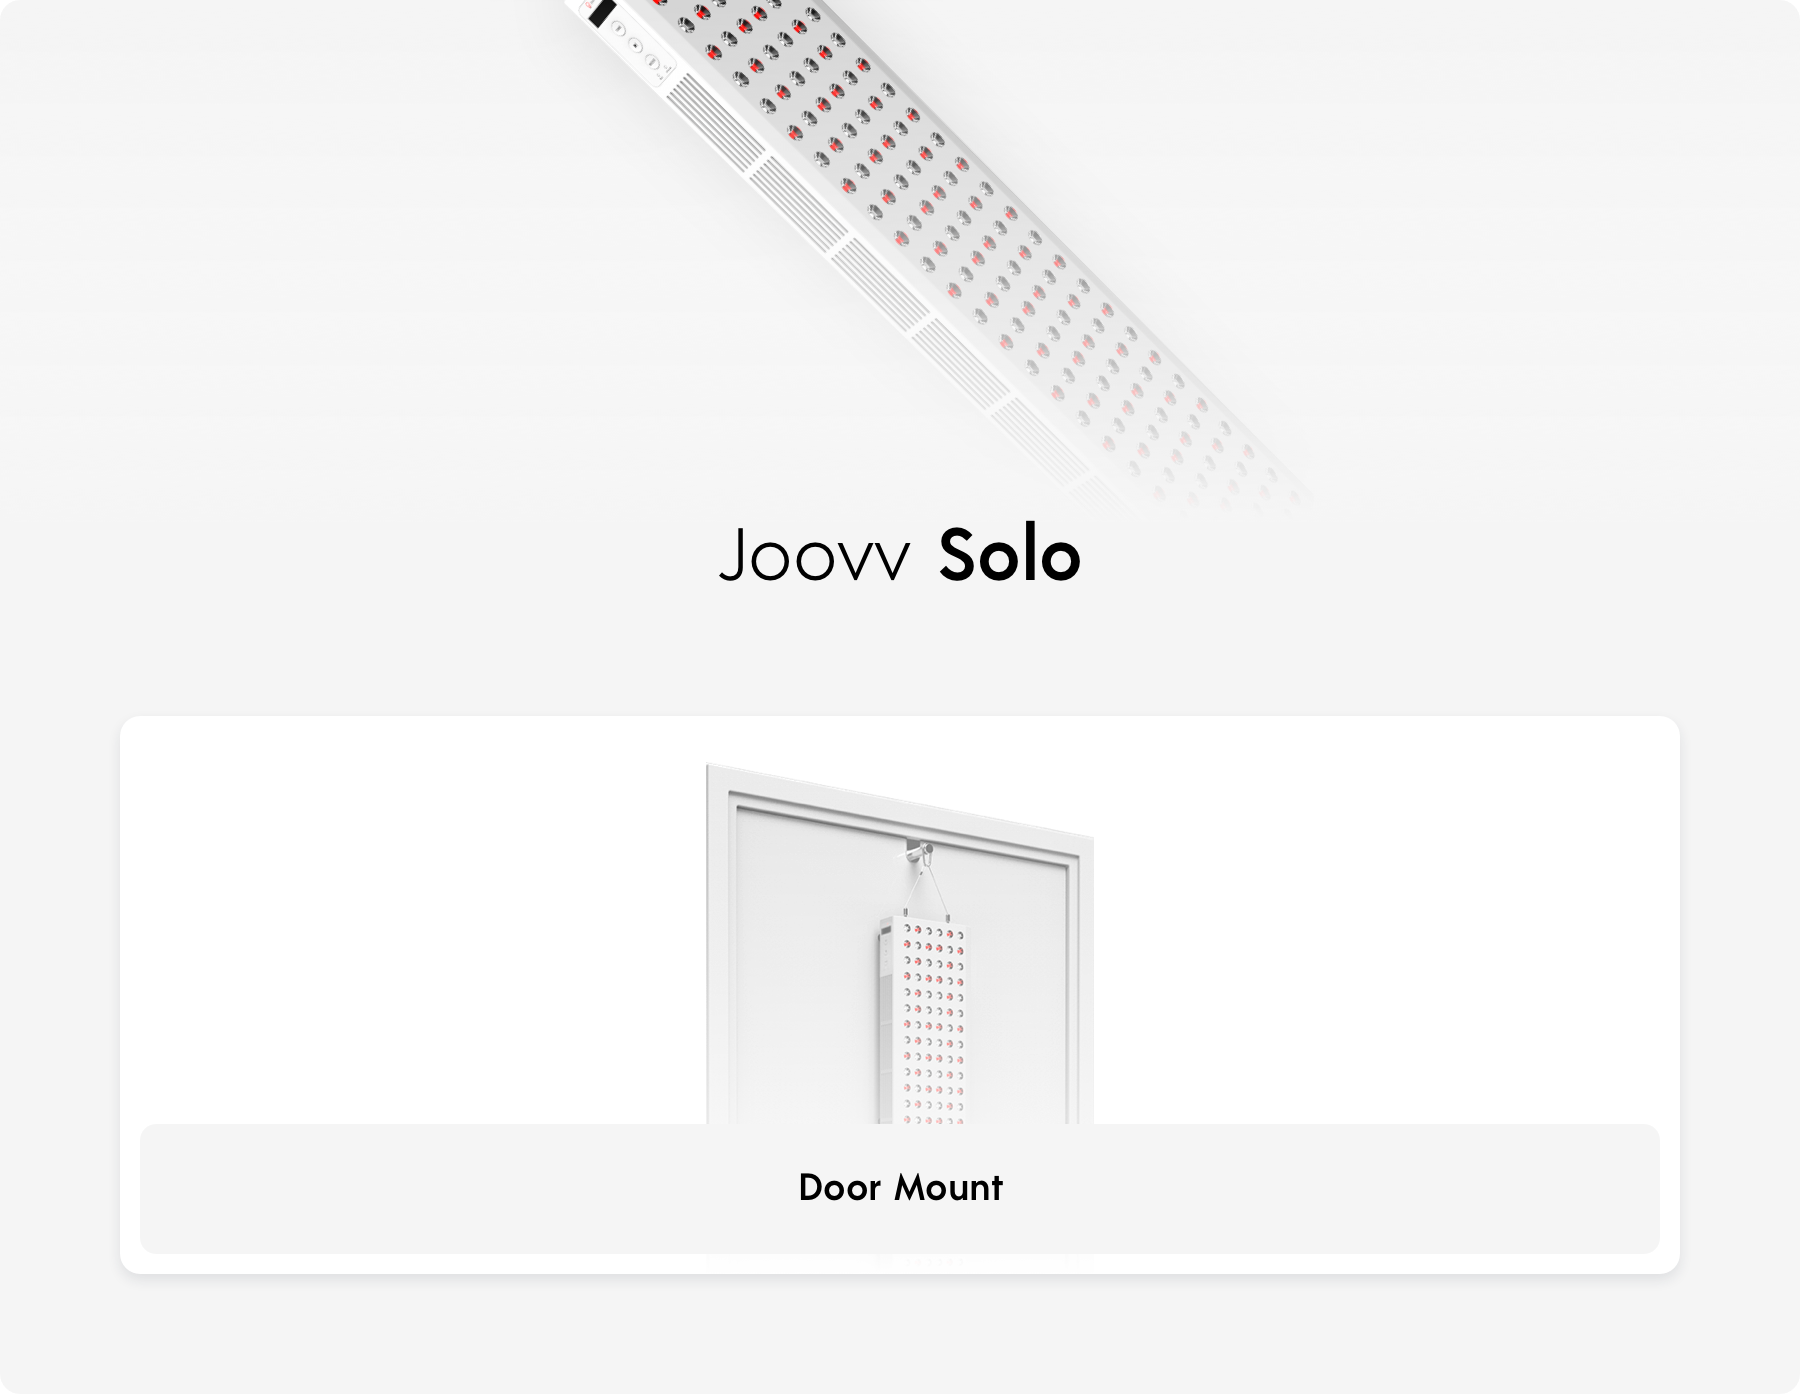 Joovv Solo Red Infrared LED Light Therapy